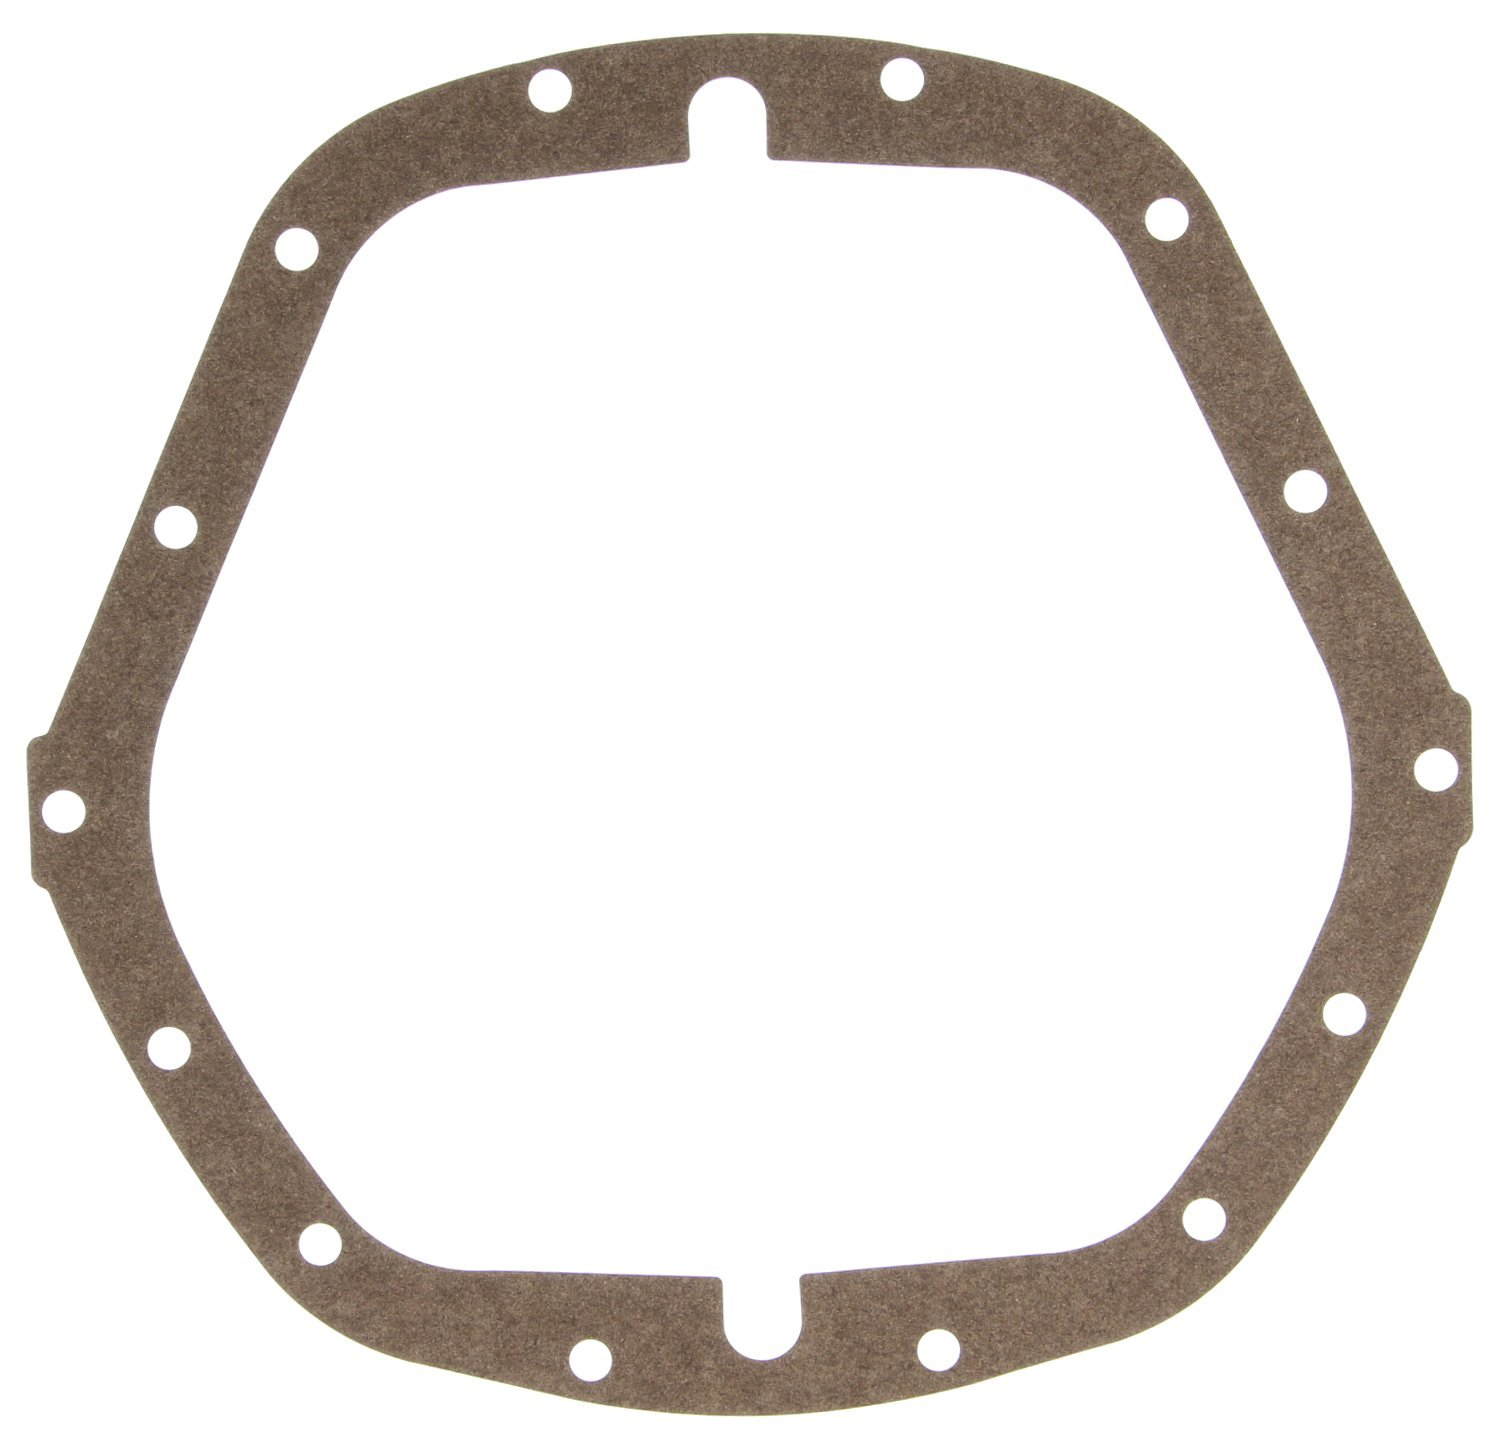 MAHLE Original P32860 Axle Housing Cover Gasket